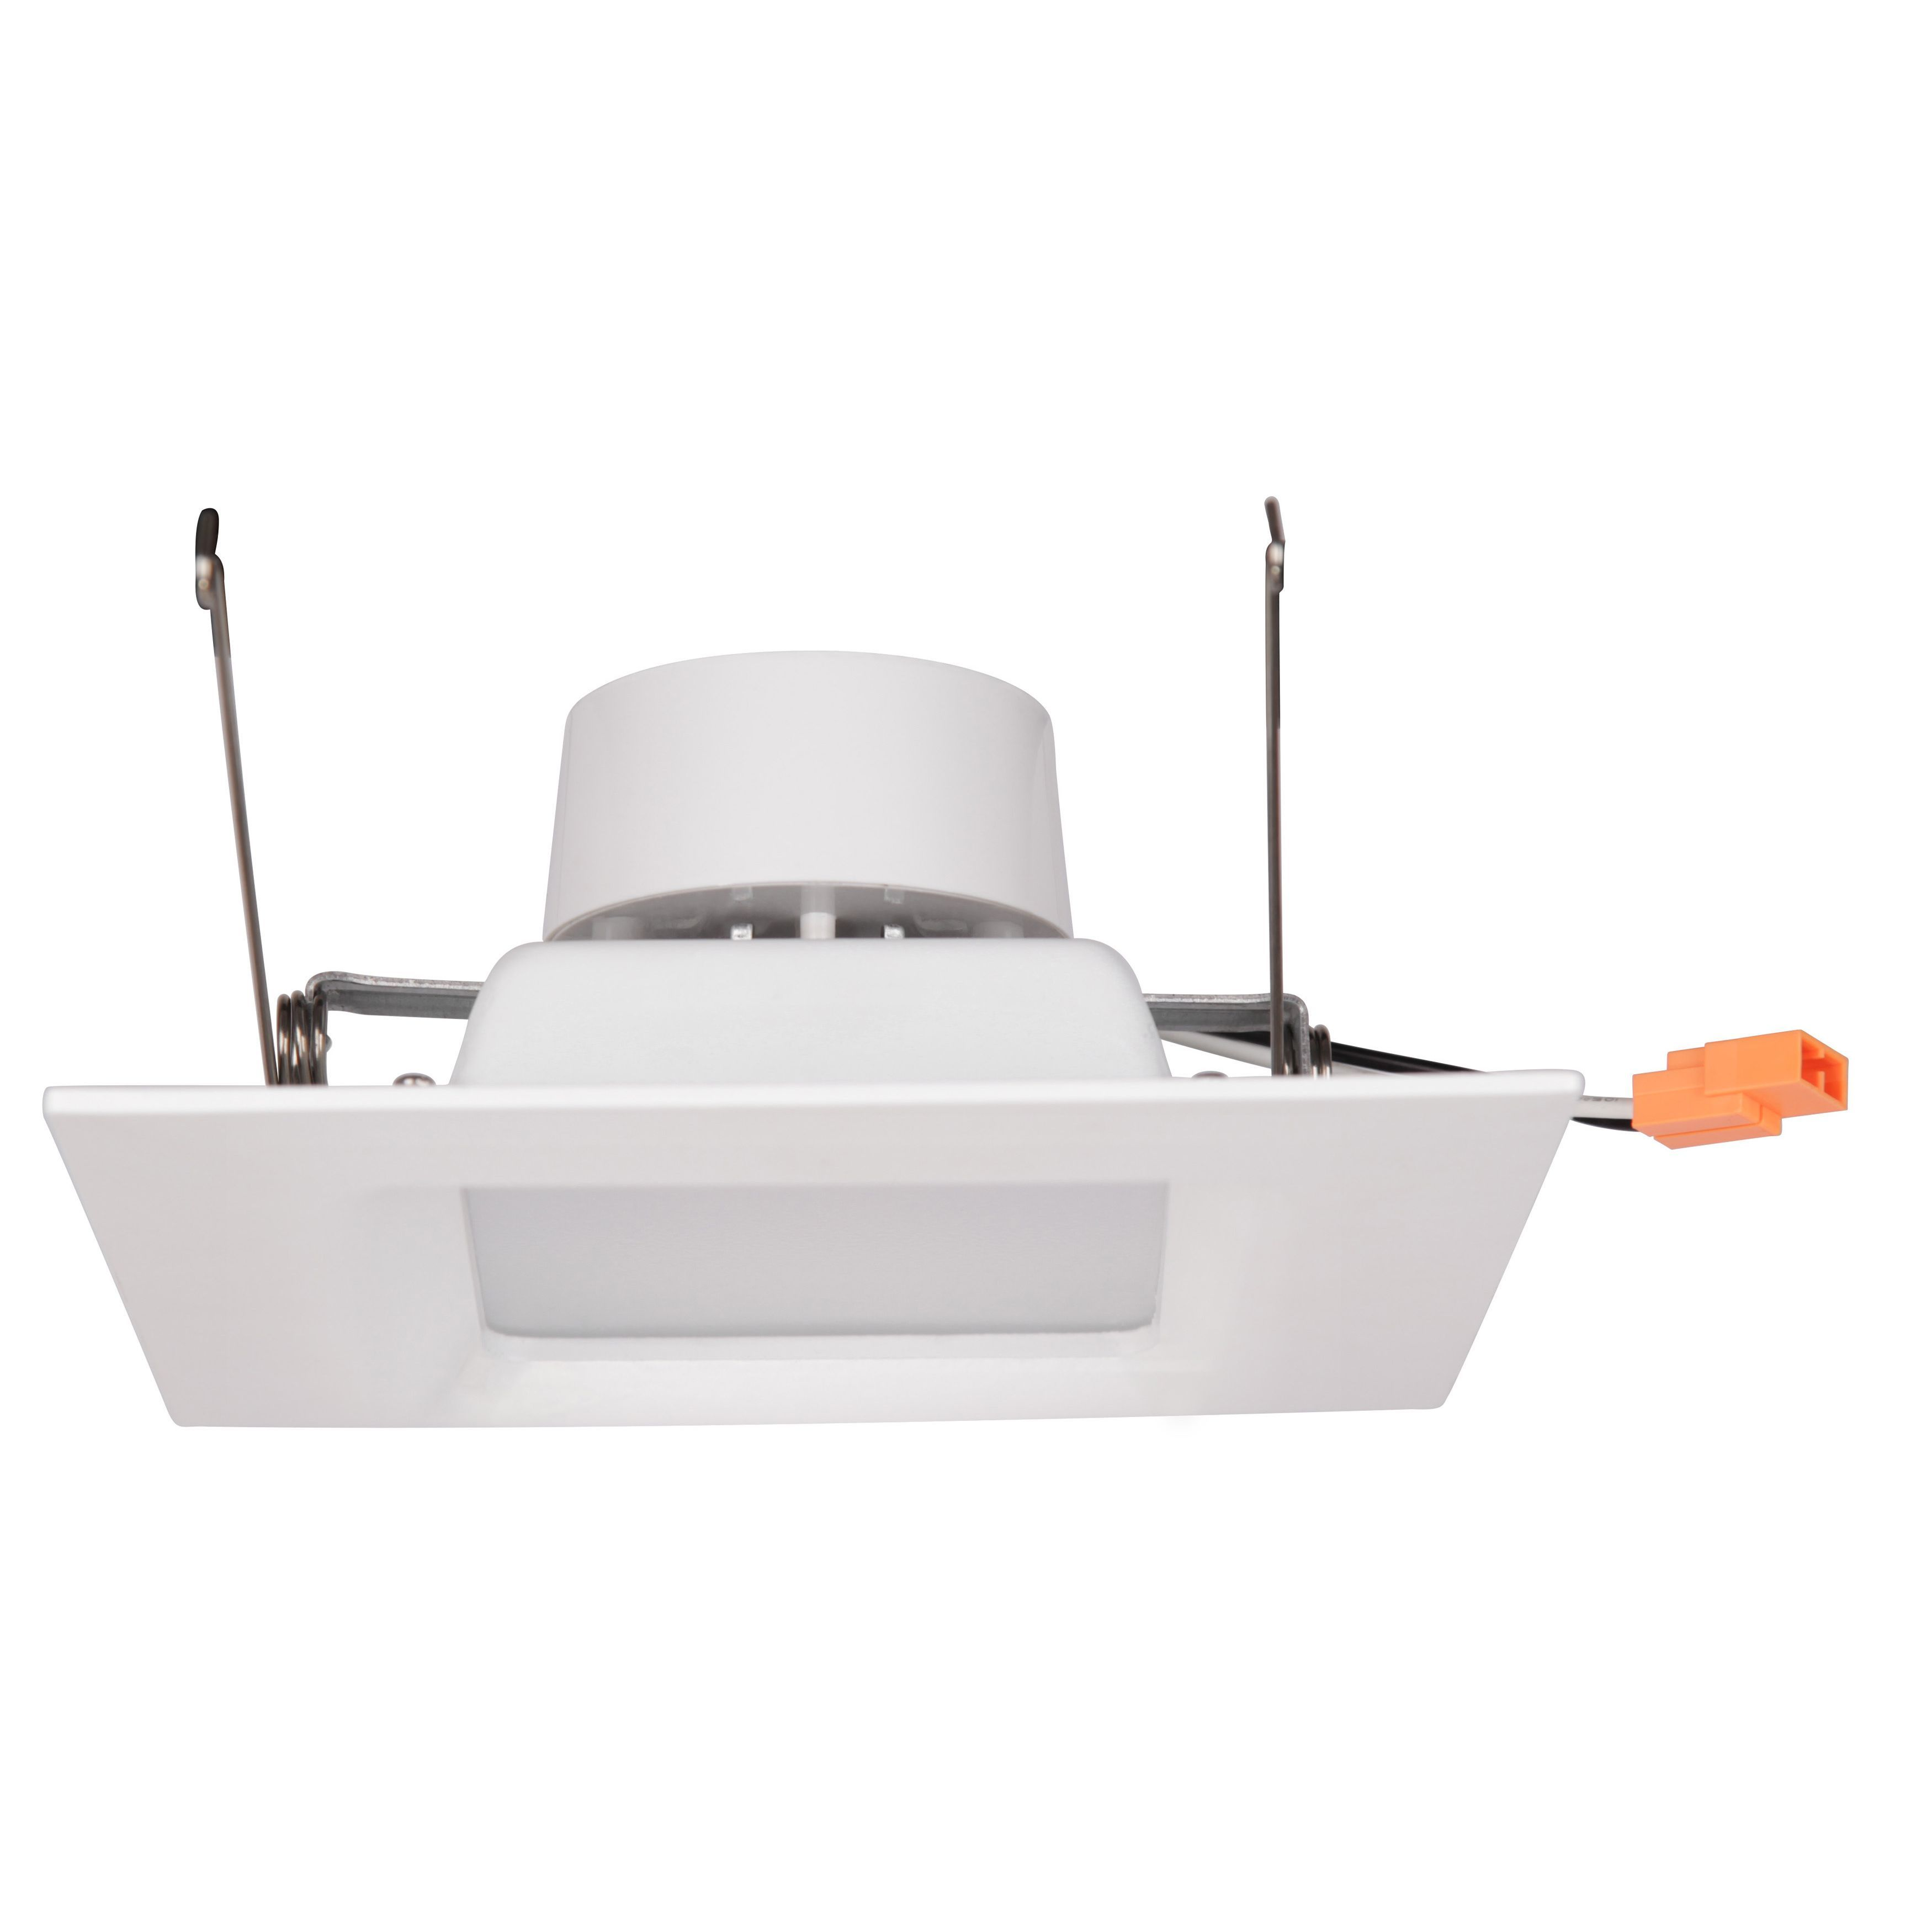 Goodlite 6 inch square retrofit dimmable ul listed 16w 120w goodlite 6 inch square retrofit dimmable ul listed 16w 120w replacement 1200 lumen led recessed lighting fixture pack of 5 3000k warm white acrylic aloadofball Choice Image